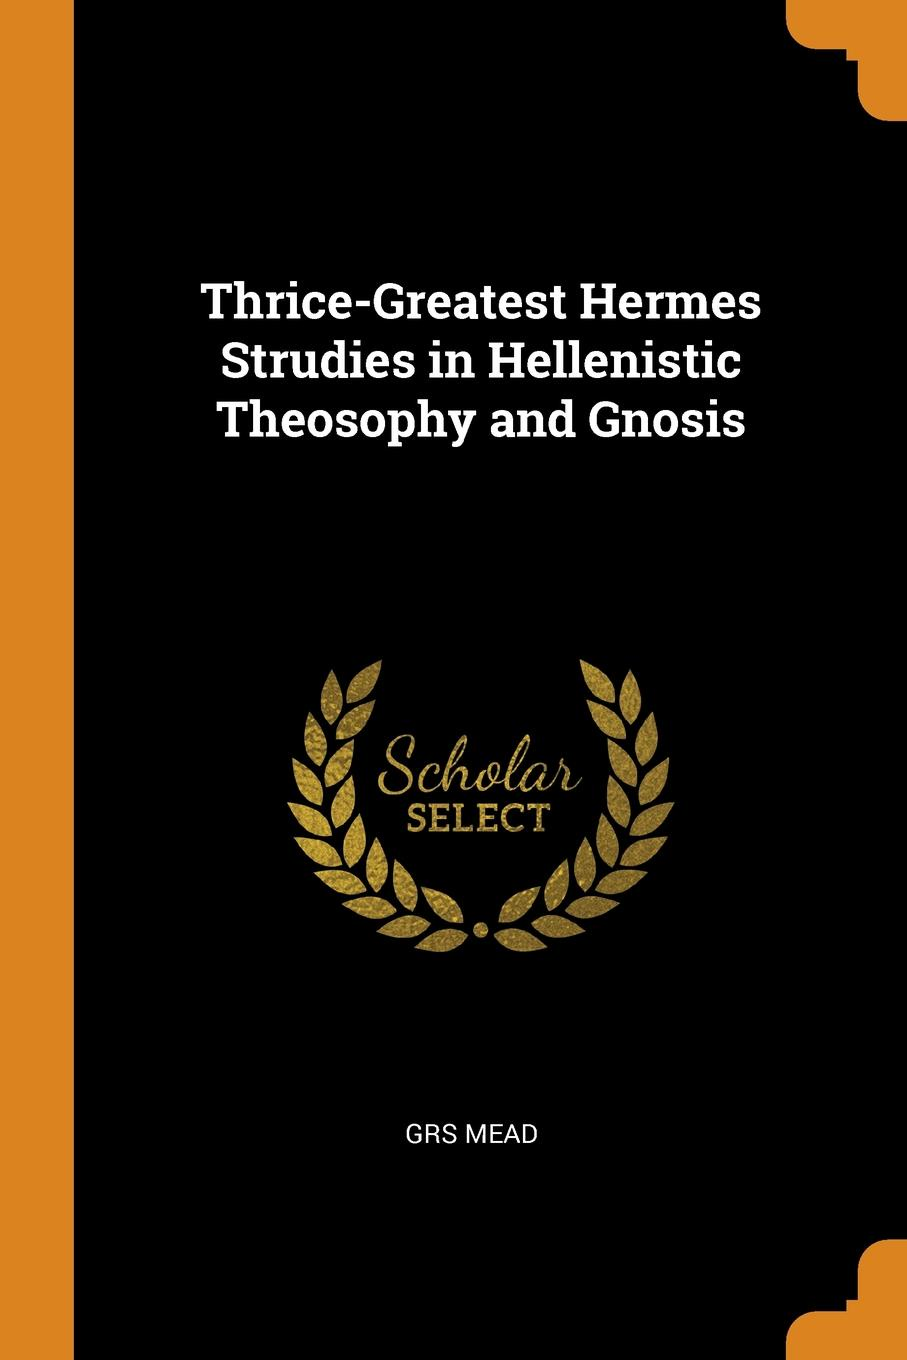 GRS Mead Thrice-Greatest Hermes Strudies in Hellenistic Theosophy and Gnosis